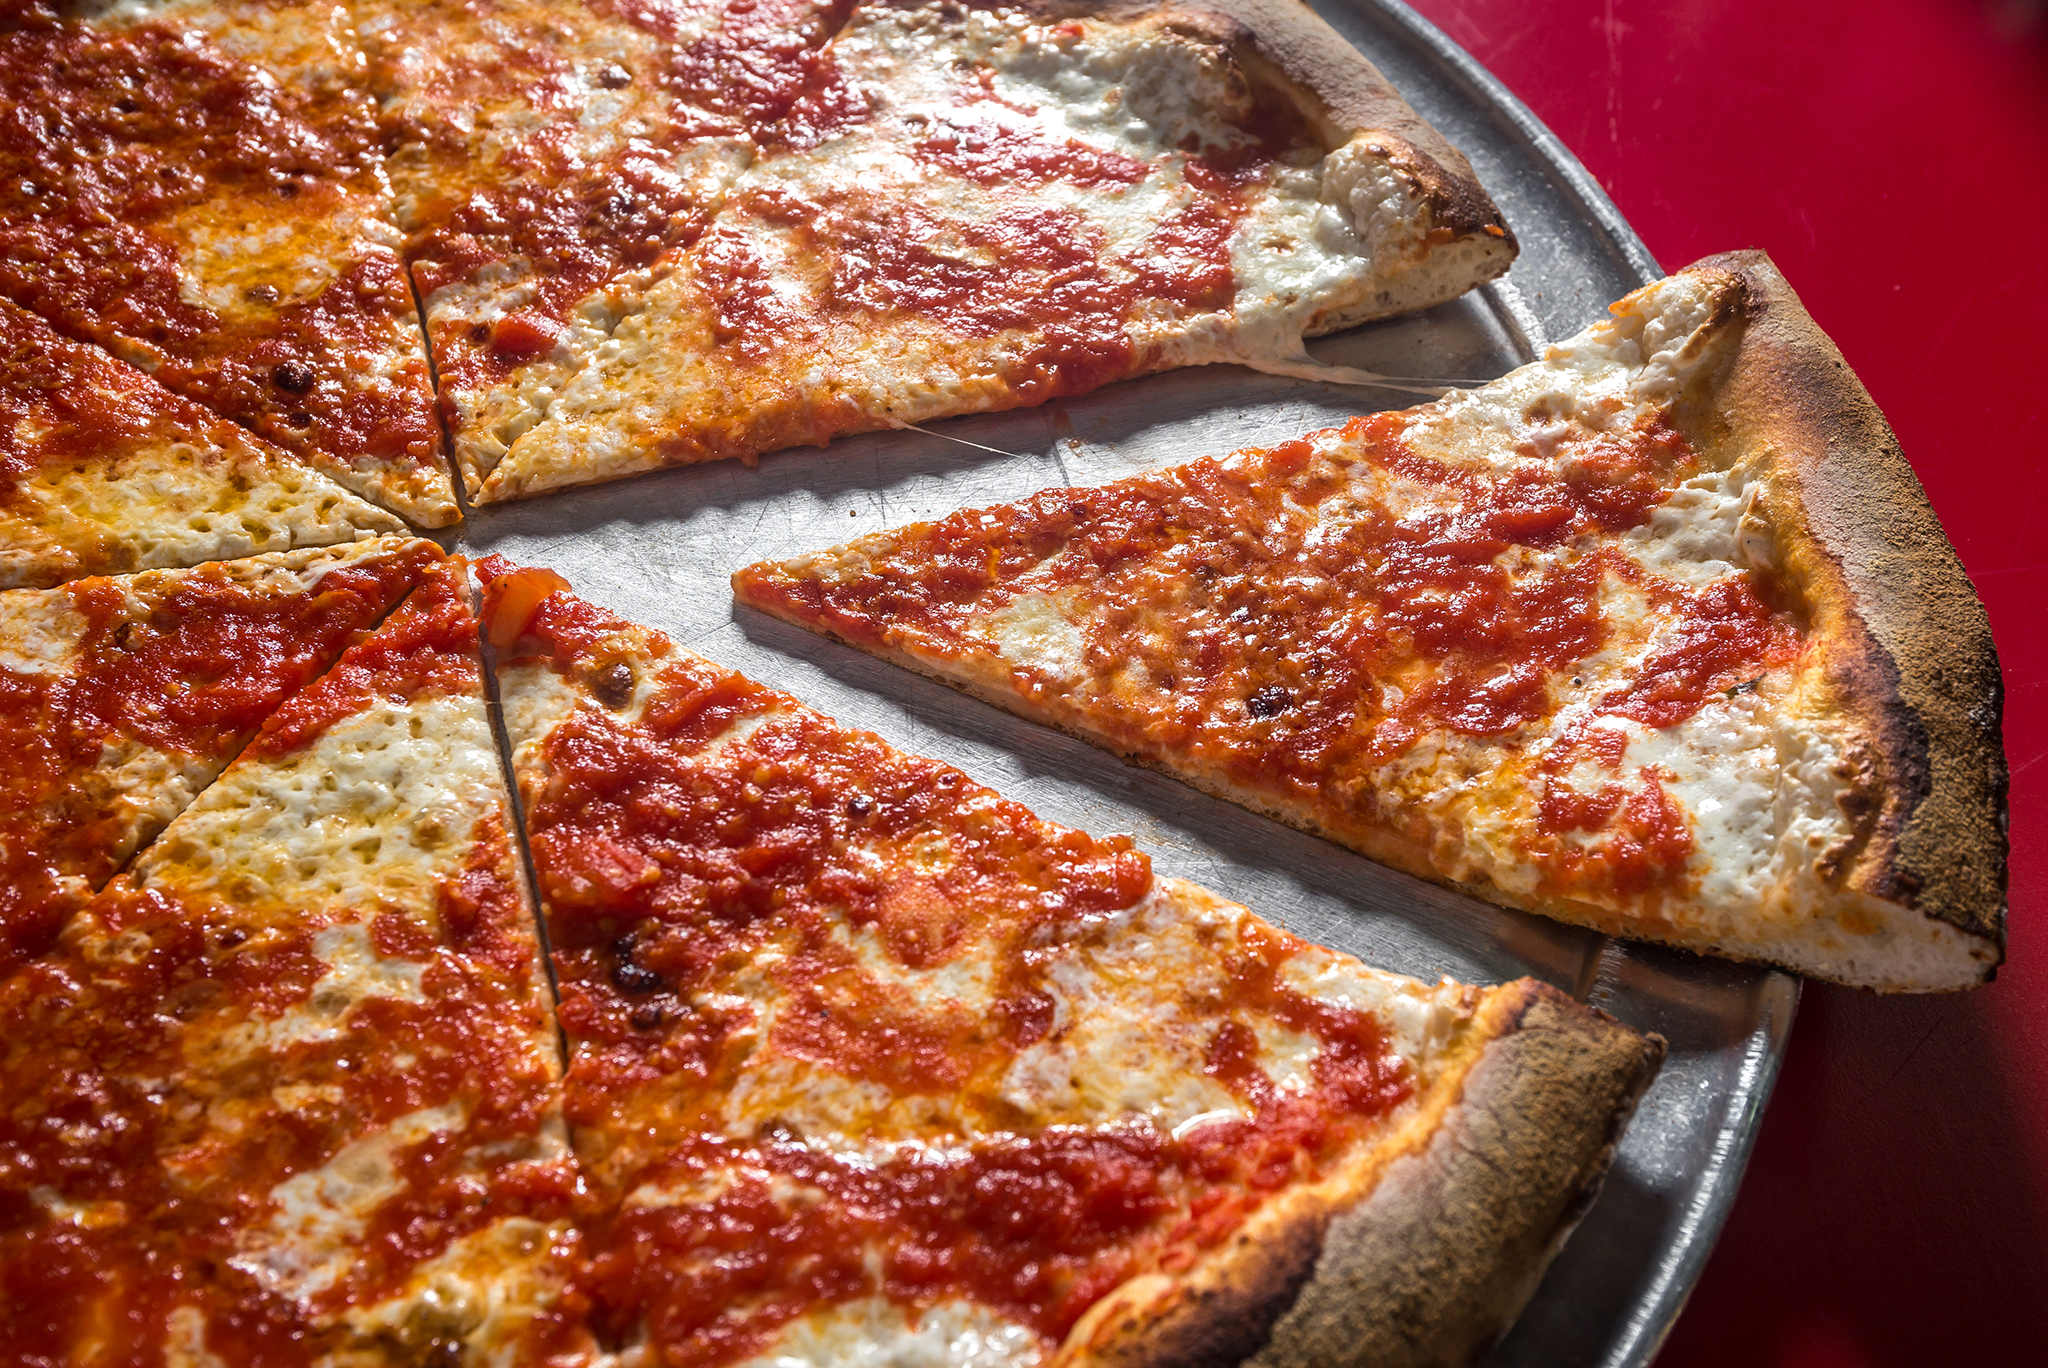 What are your picks for the best pizzas in New York?